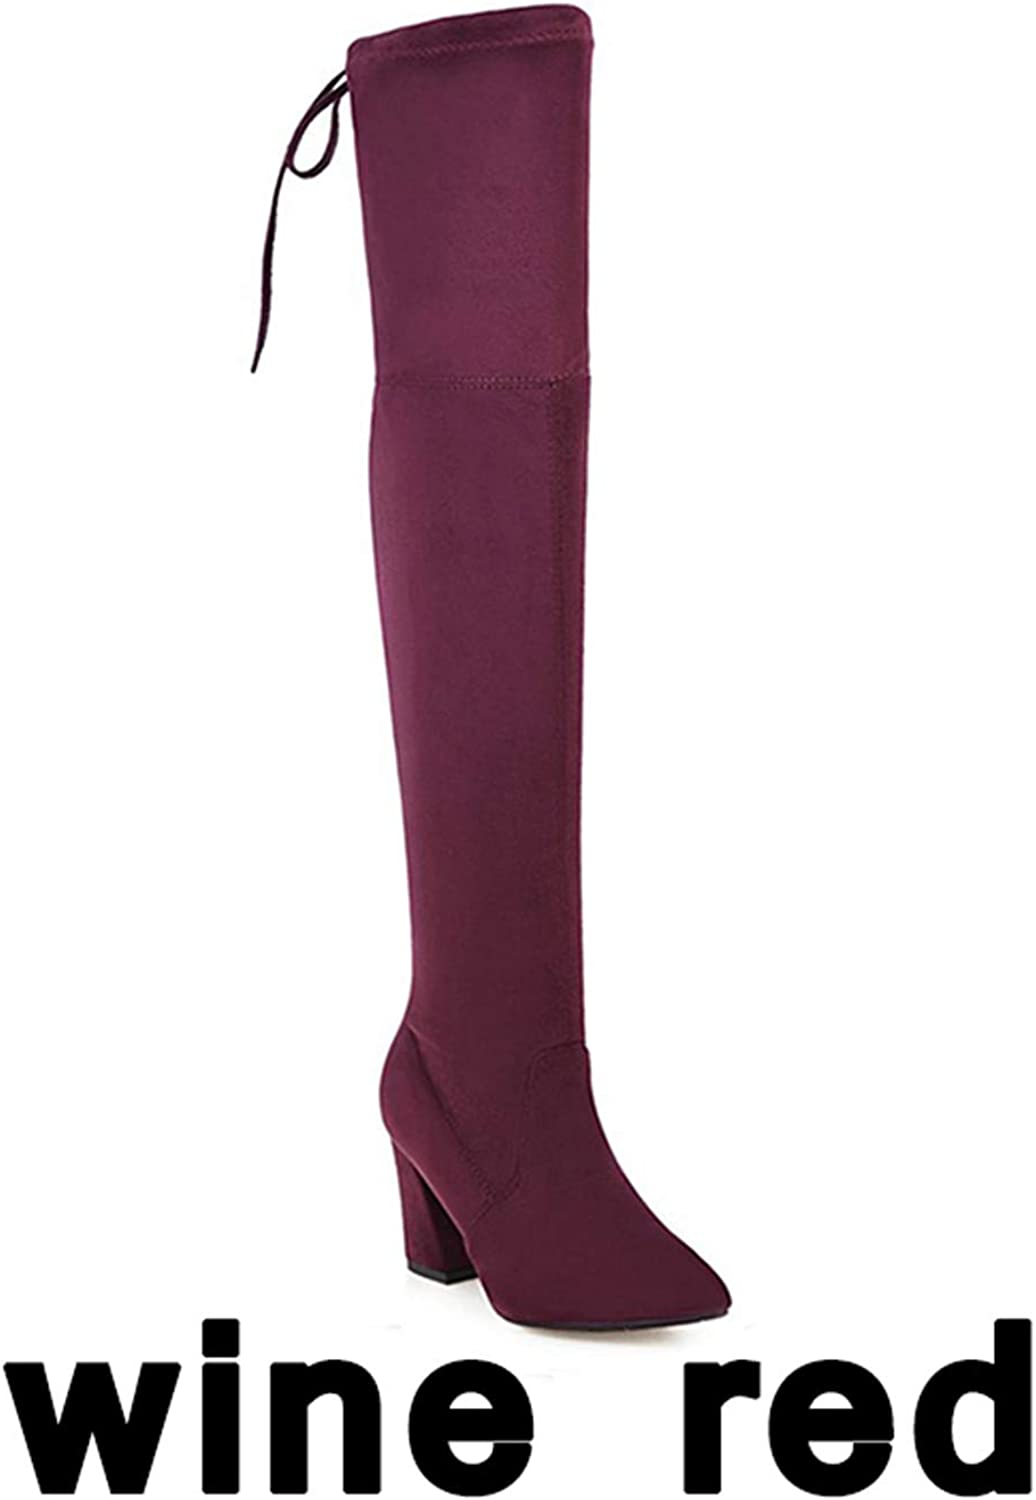 Twinkle UU Boots High Heels Sexy Flock Woman Over The Knee Boot Stretch Lady Long Boot 34-43